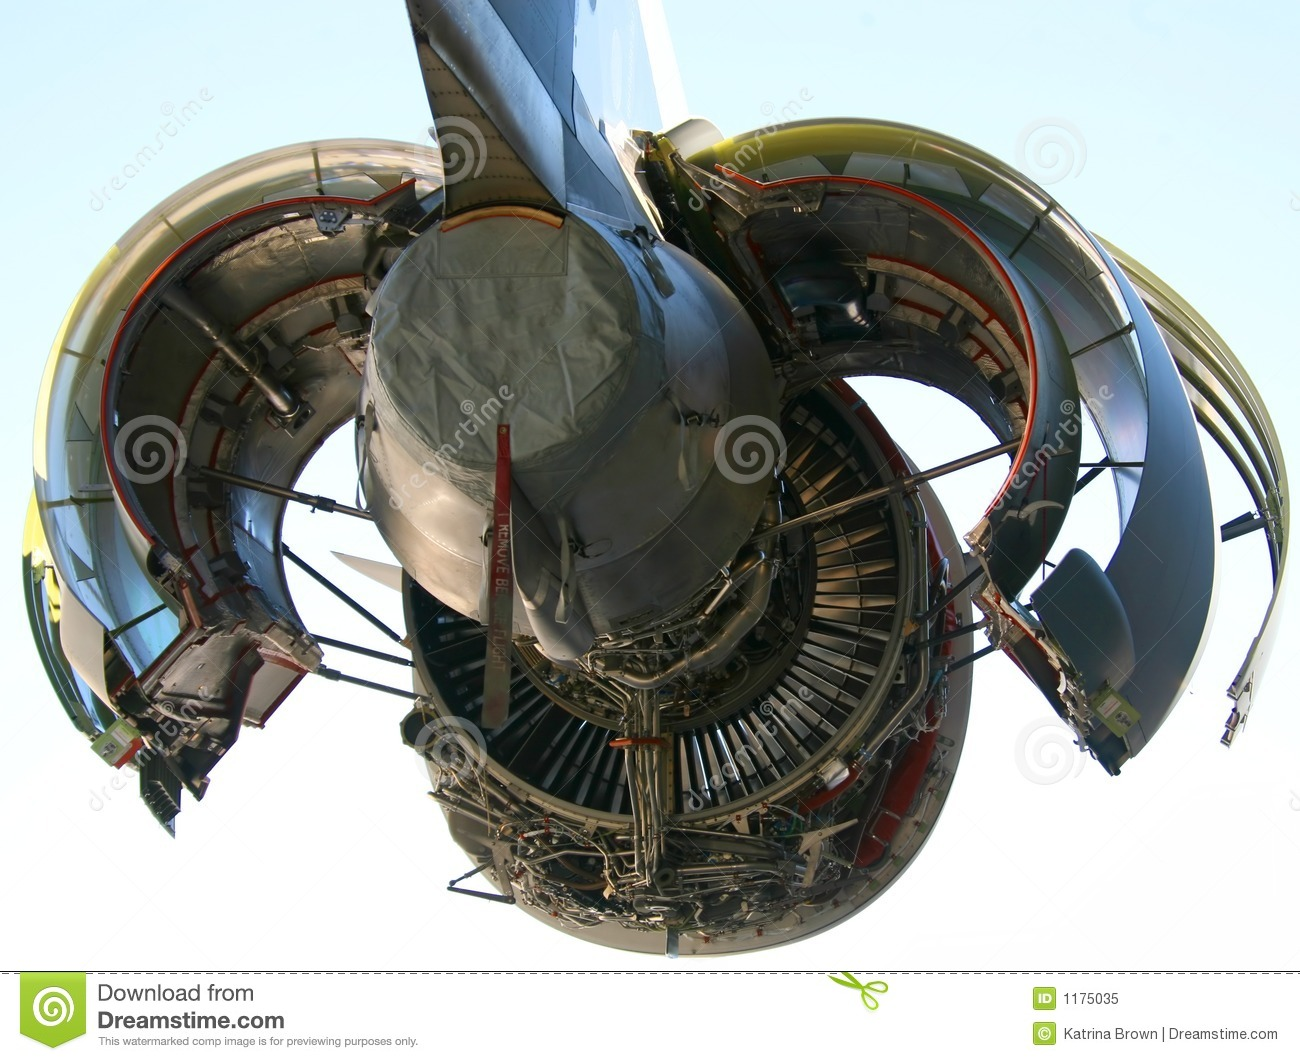 Merlin Wallpaper Hd C 17 Military Aircraft Engine Stock Image Image Of Fuel